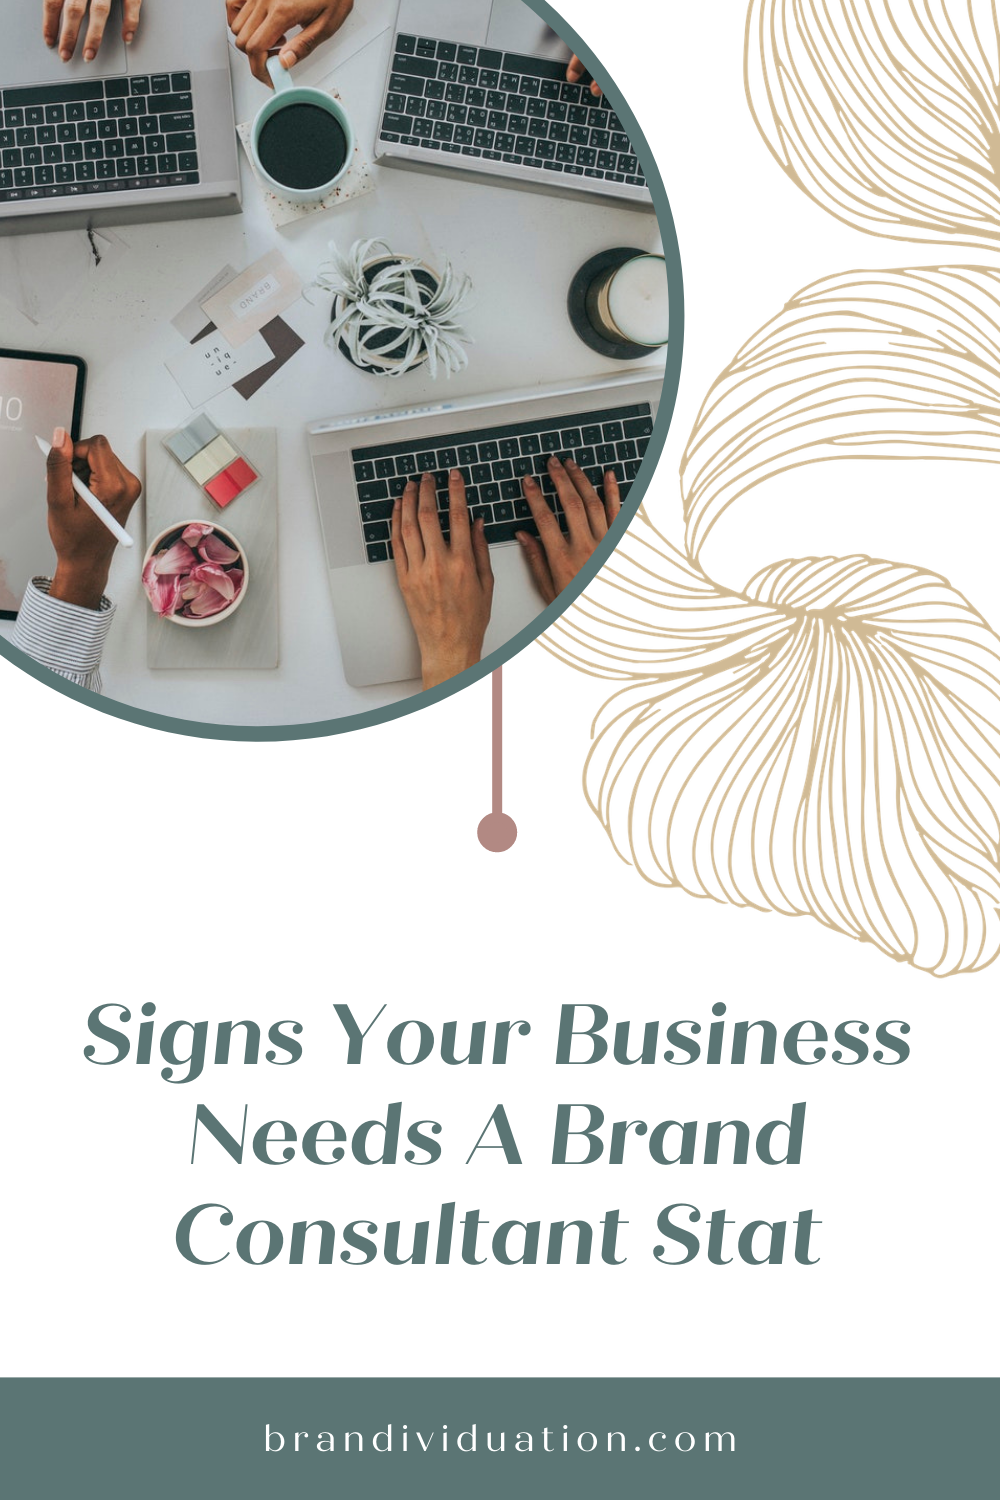 Signs Your Business Needs A Brand Consultant Stat